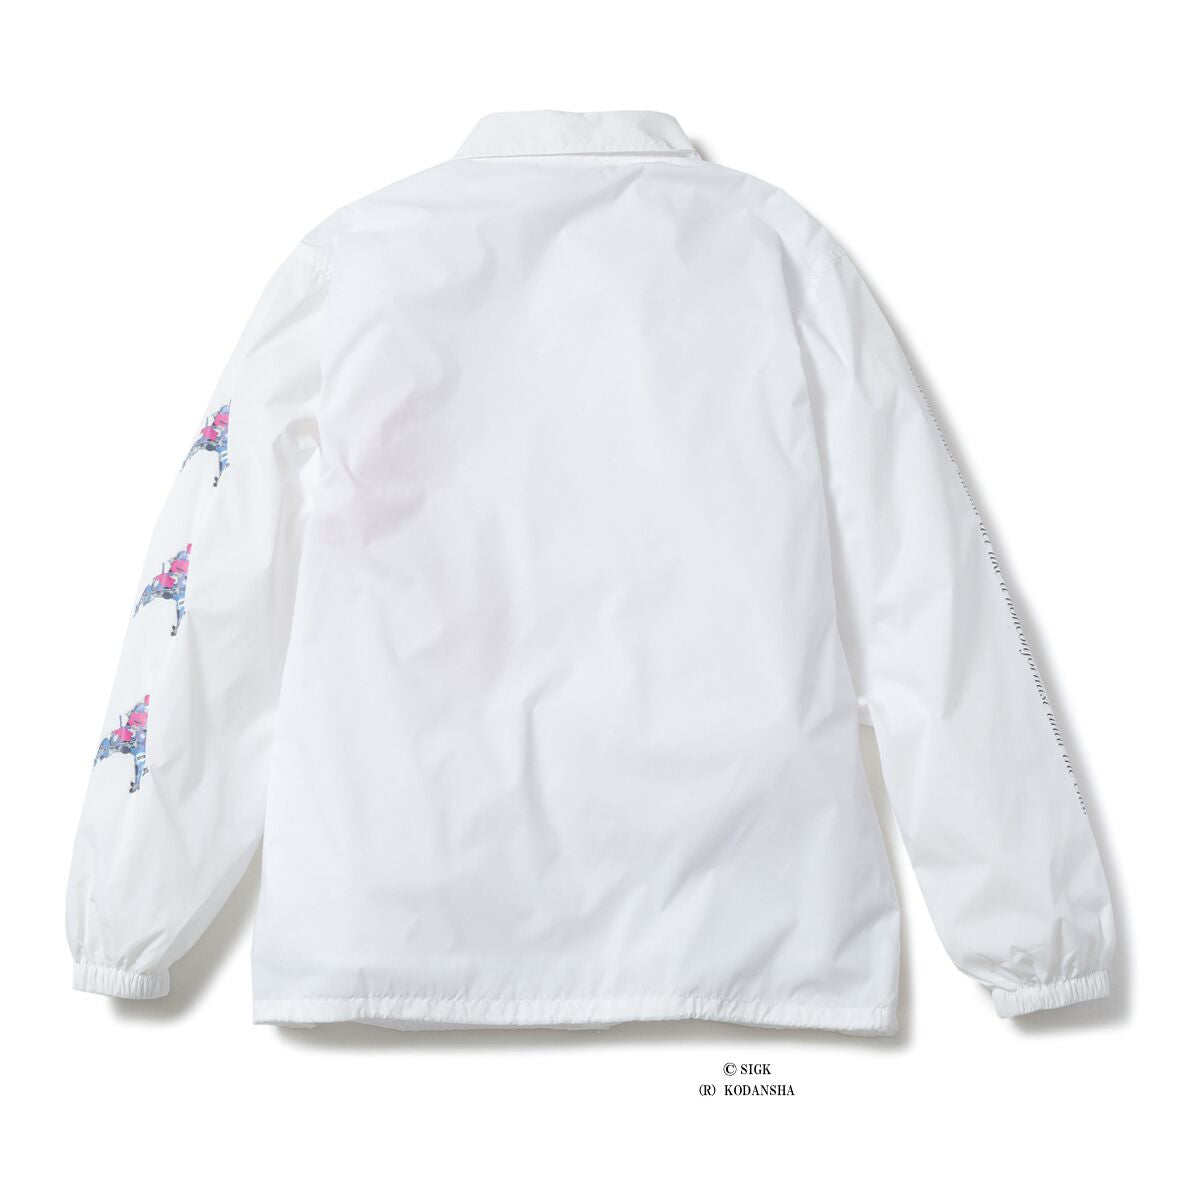 ICECREAM X GHOST IN THE SHELL TACHIKOMA COACH JACKET